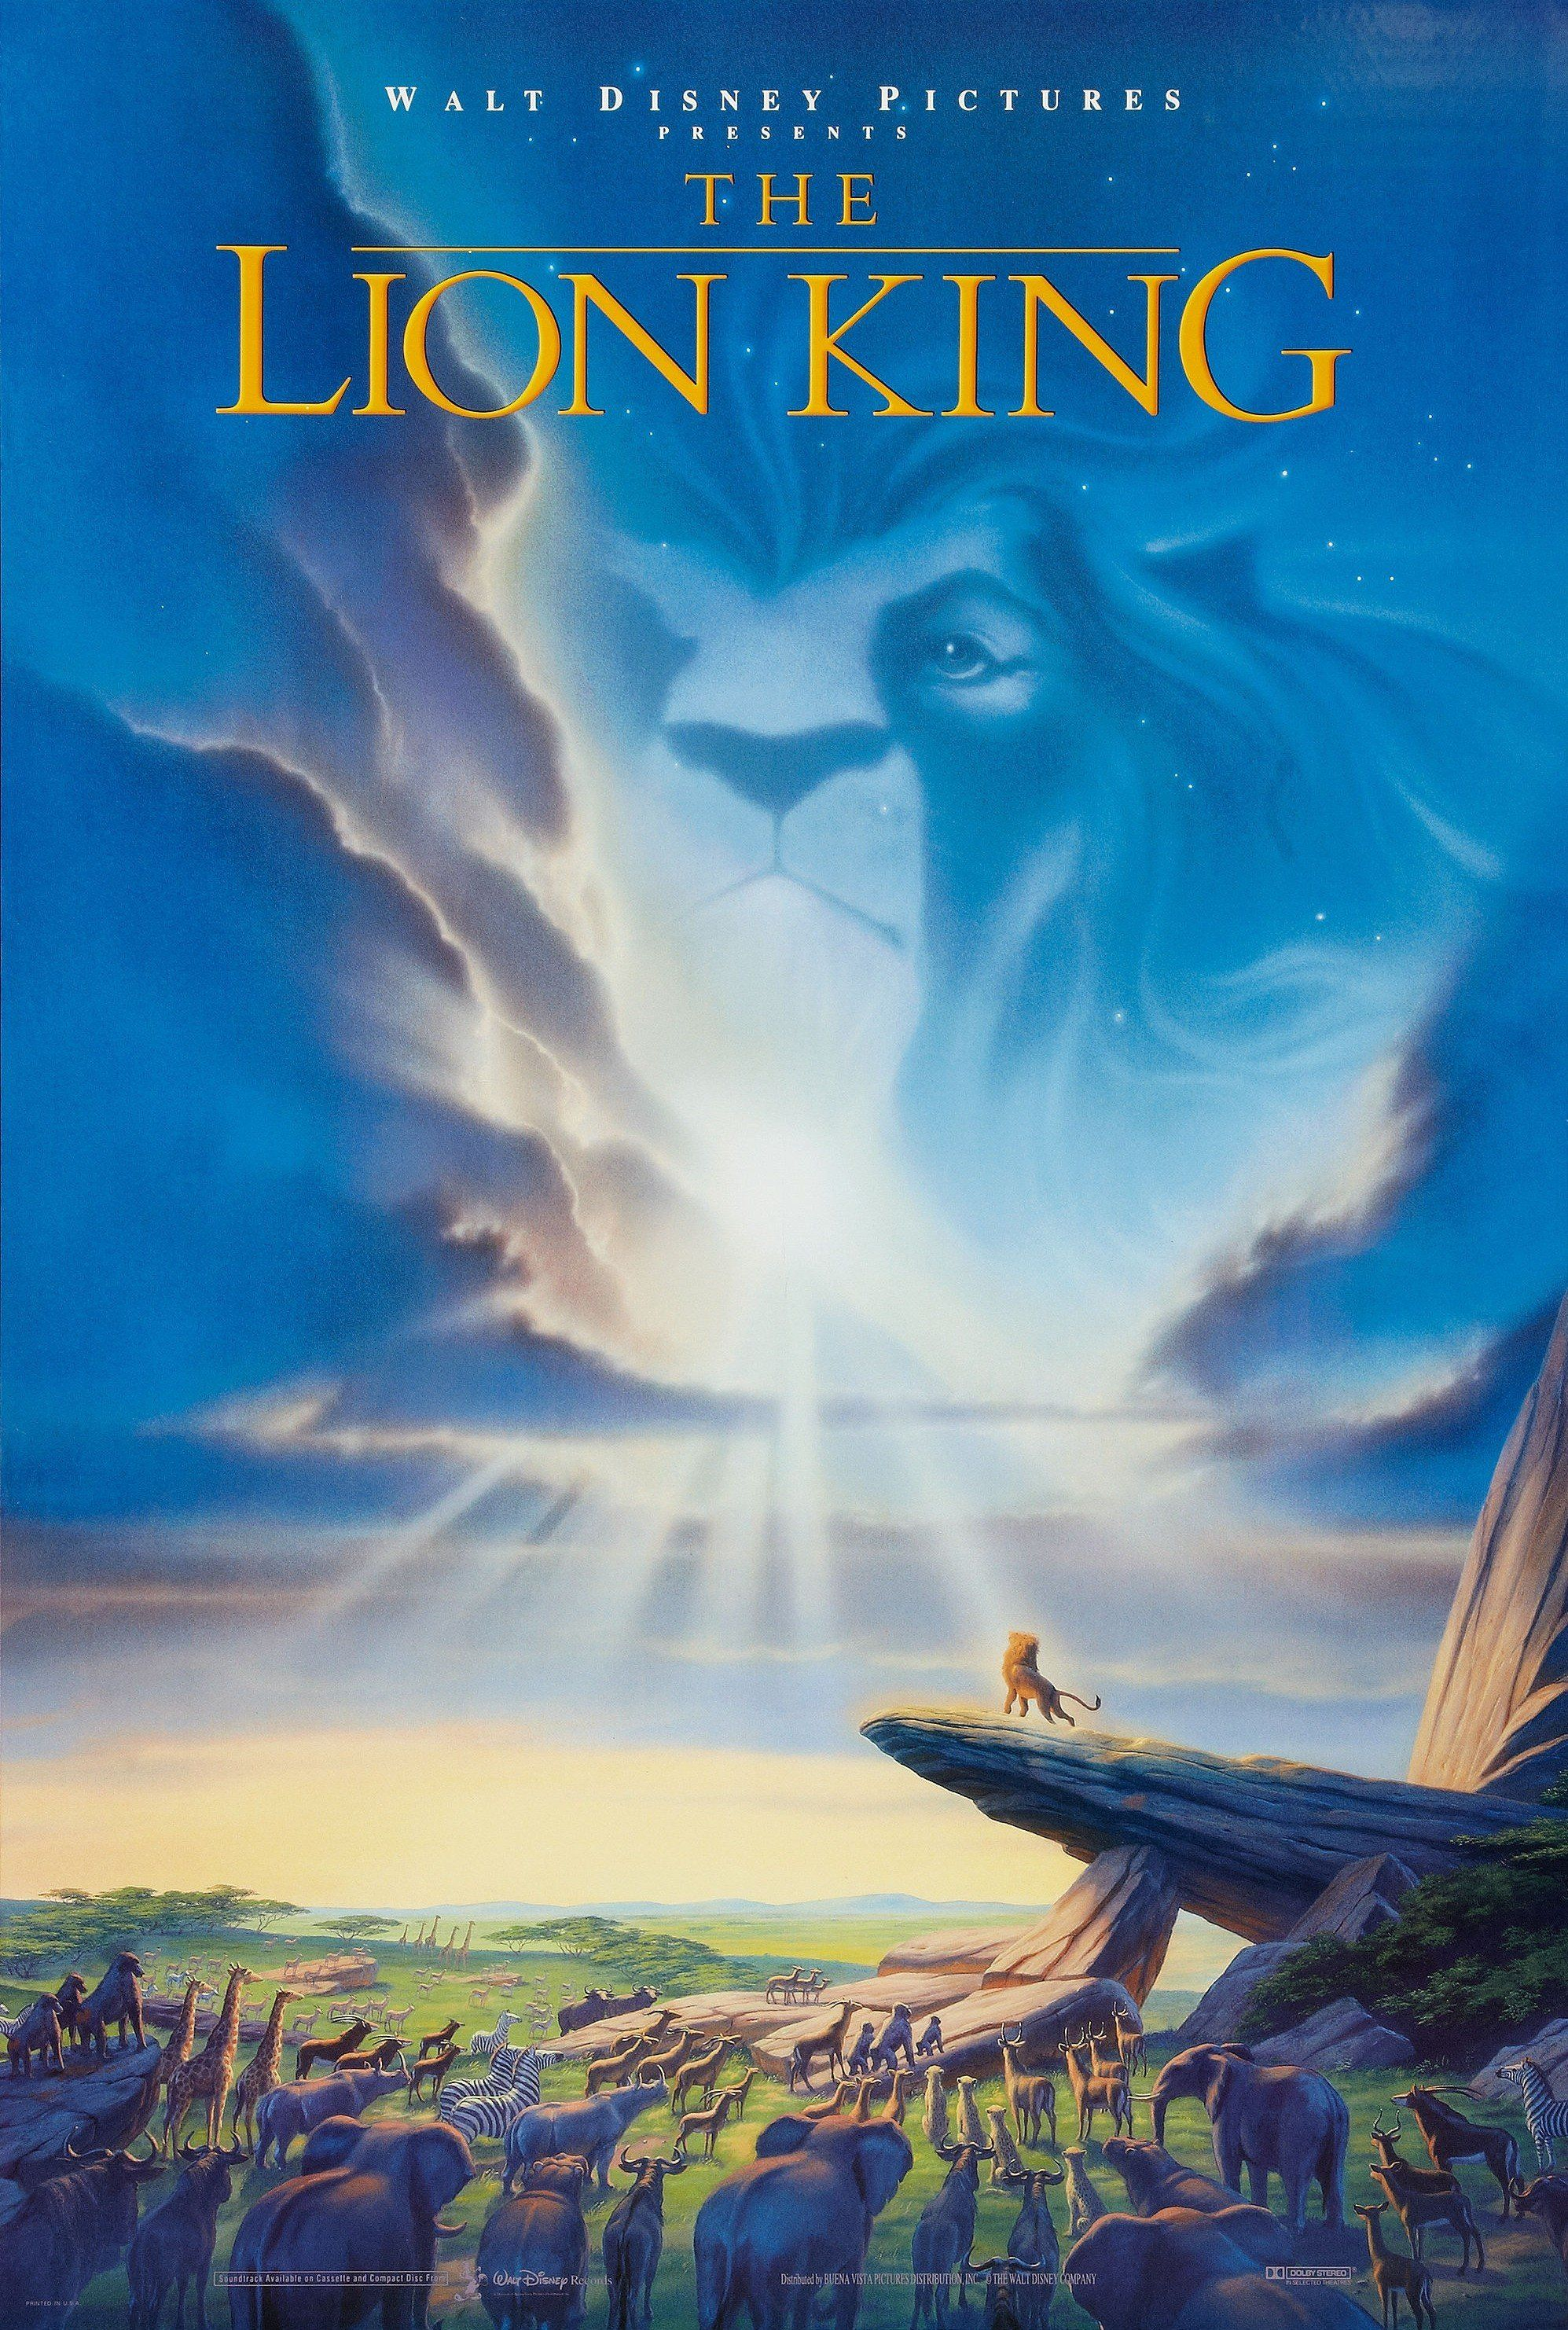 The Lion King (1994) The Lion King represents the peak of the Disney Renaissance and set box office records worldwide on its release. A clever retelling of Hamlet , the movie has as much drama and heart as any live-action film.